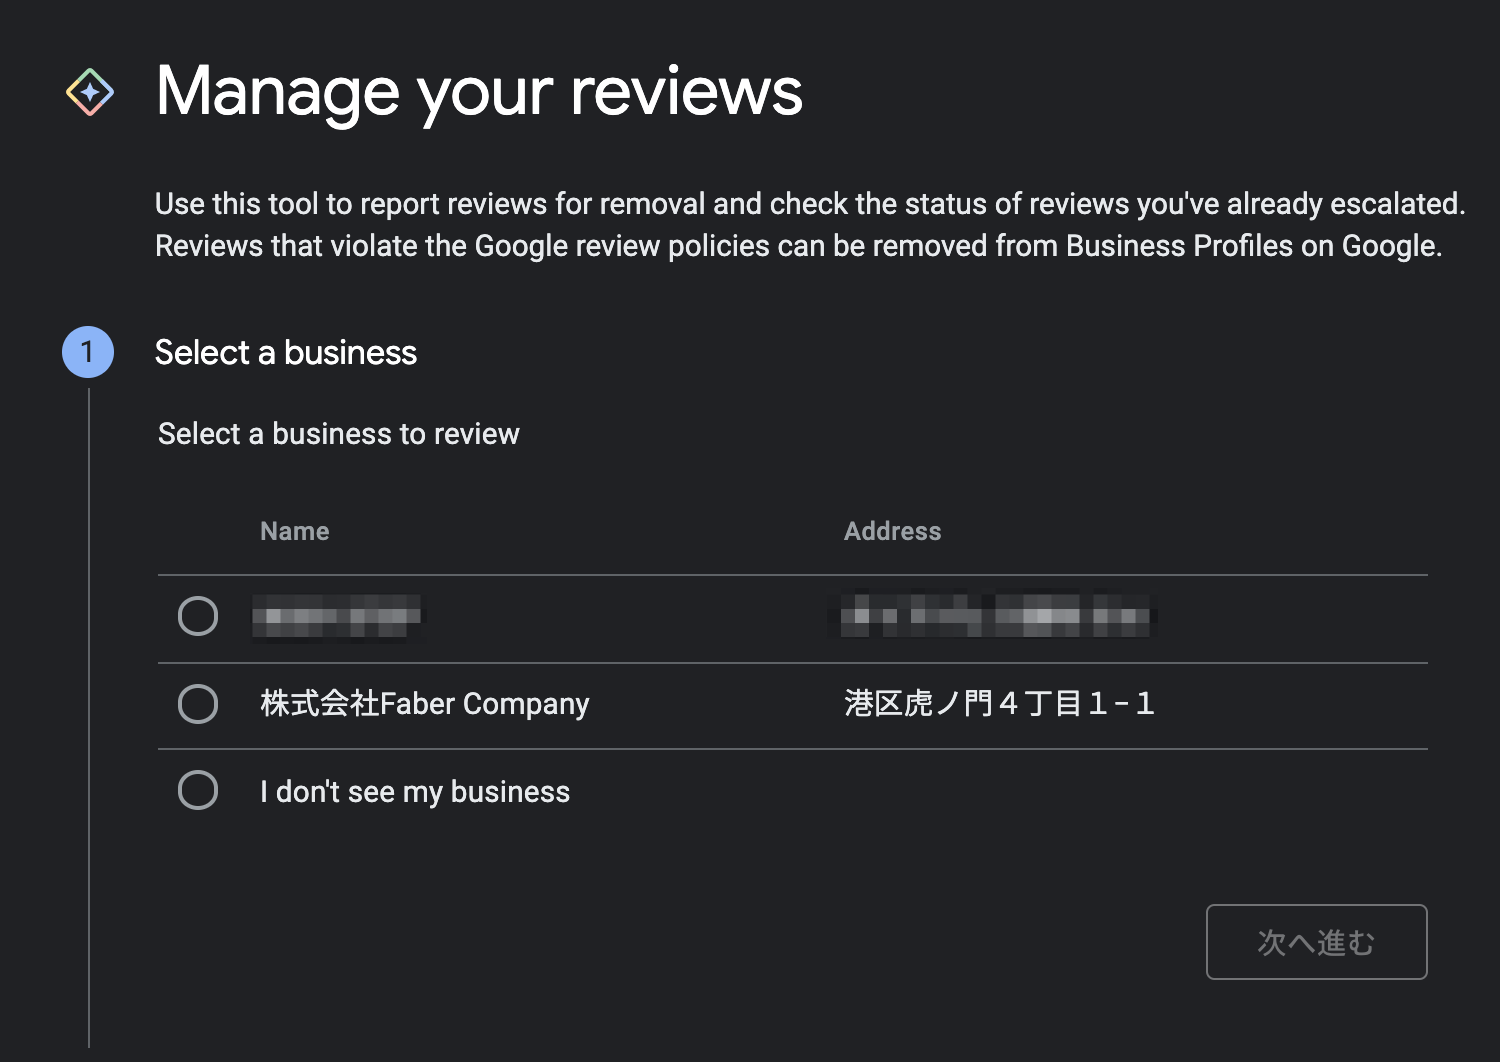 Manage your reviews on Maps